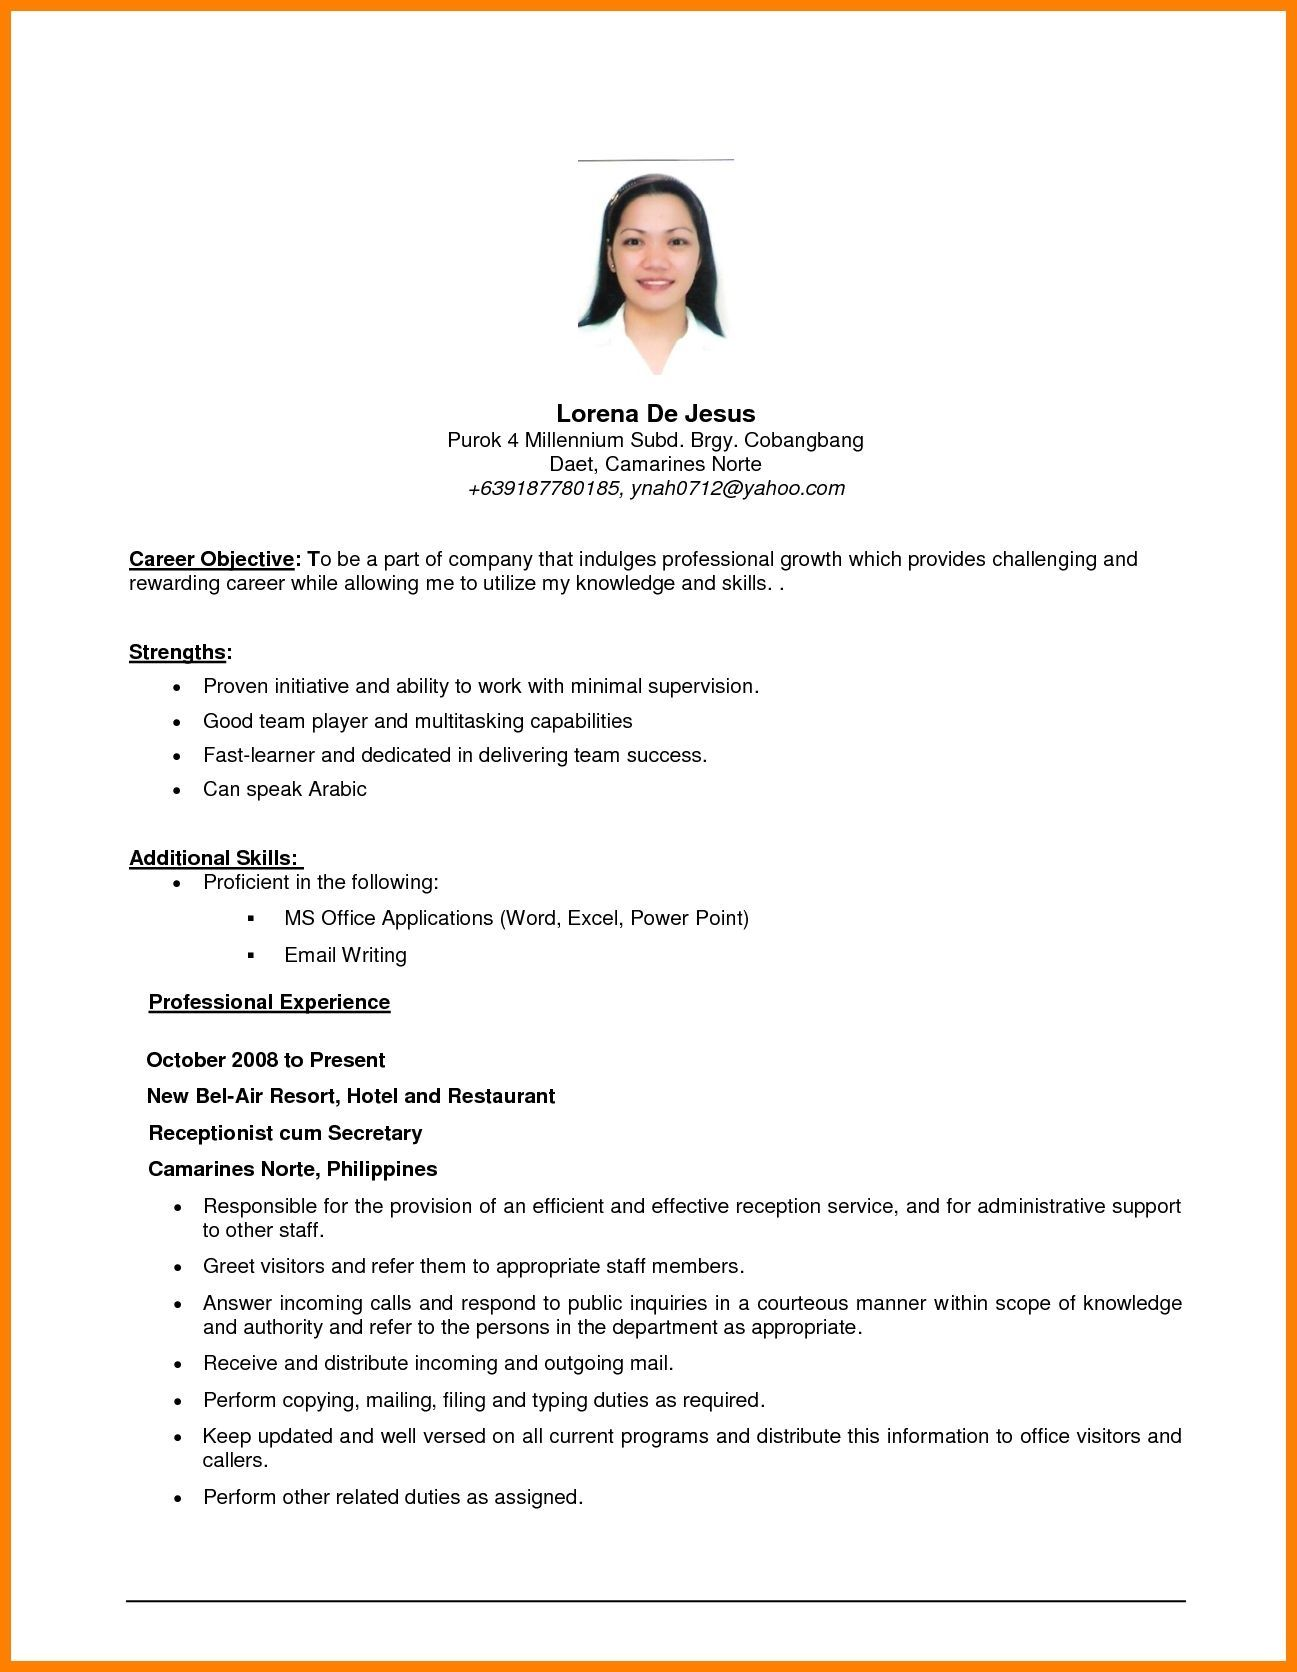 Resume Example With Objective Andriblog Design In 2020 Career Objectives For Resume Job Resume Examples Career Objective Examples